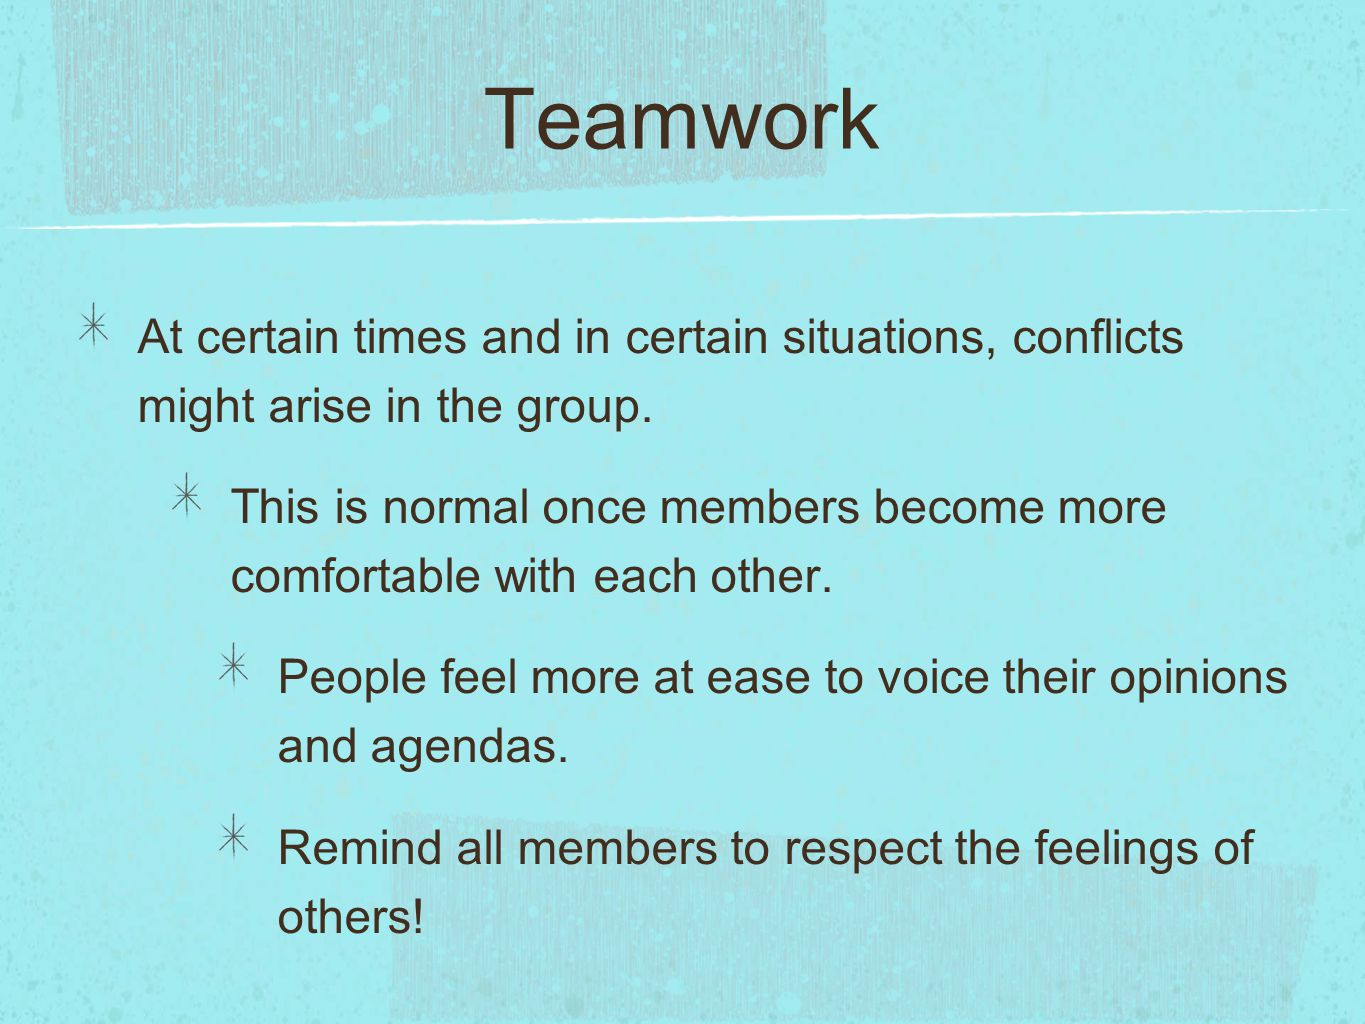 Teamwork At certain times and in certain situations, conflicts might arise in the group. This is normal once members become more comfortable with each